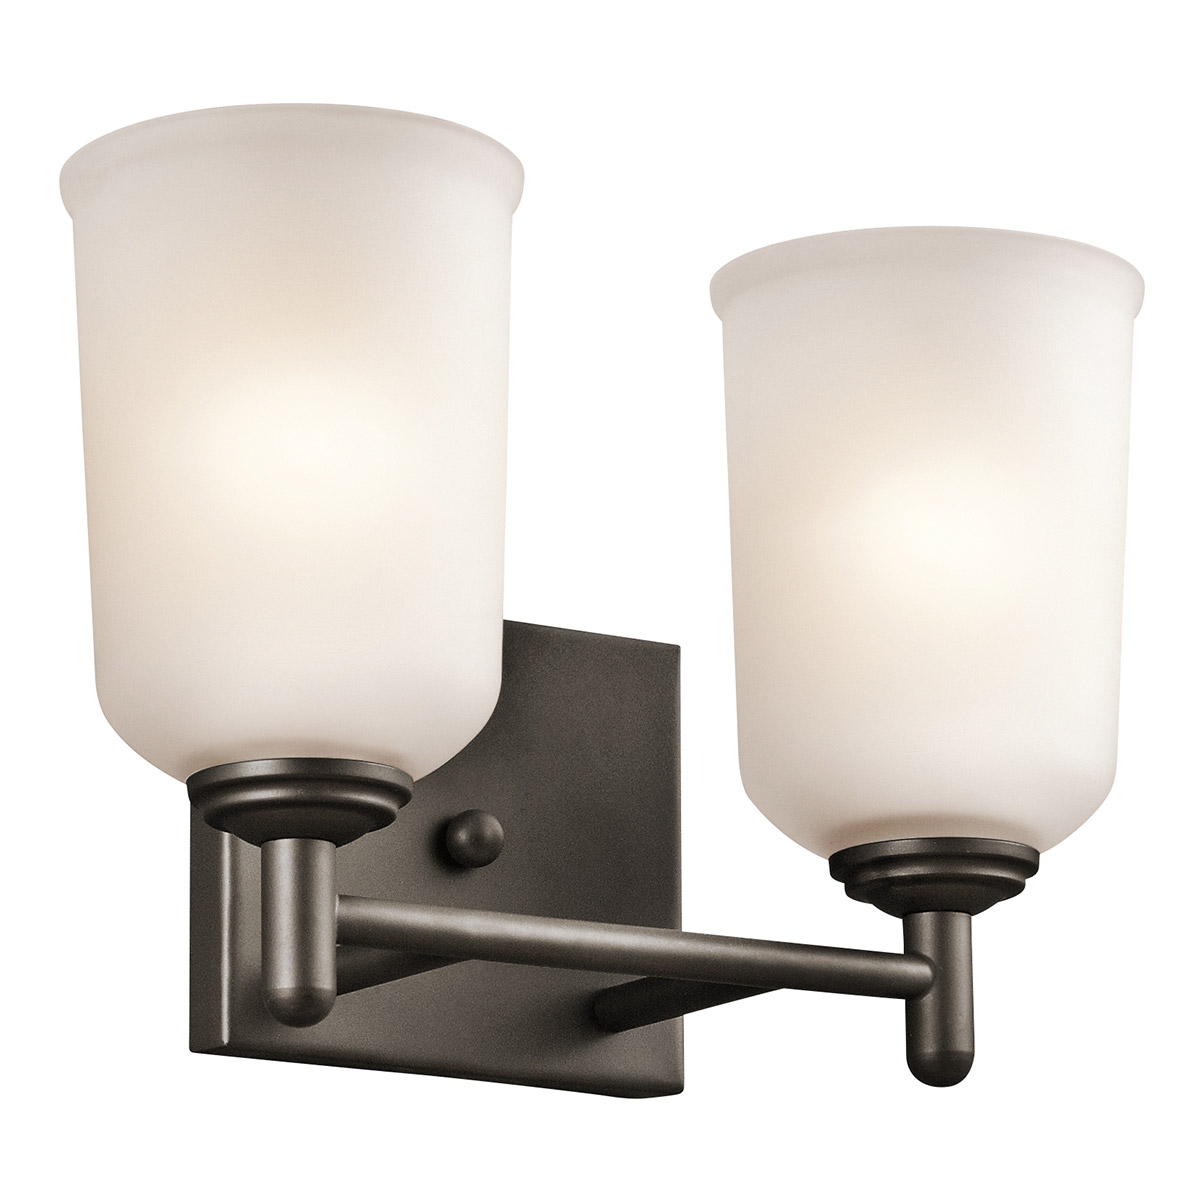 Kichler 45573oz Shailene Bathroom Vanity Light